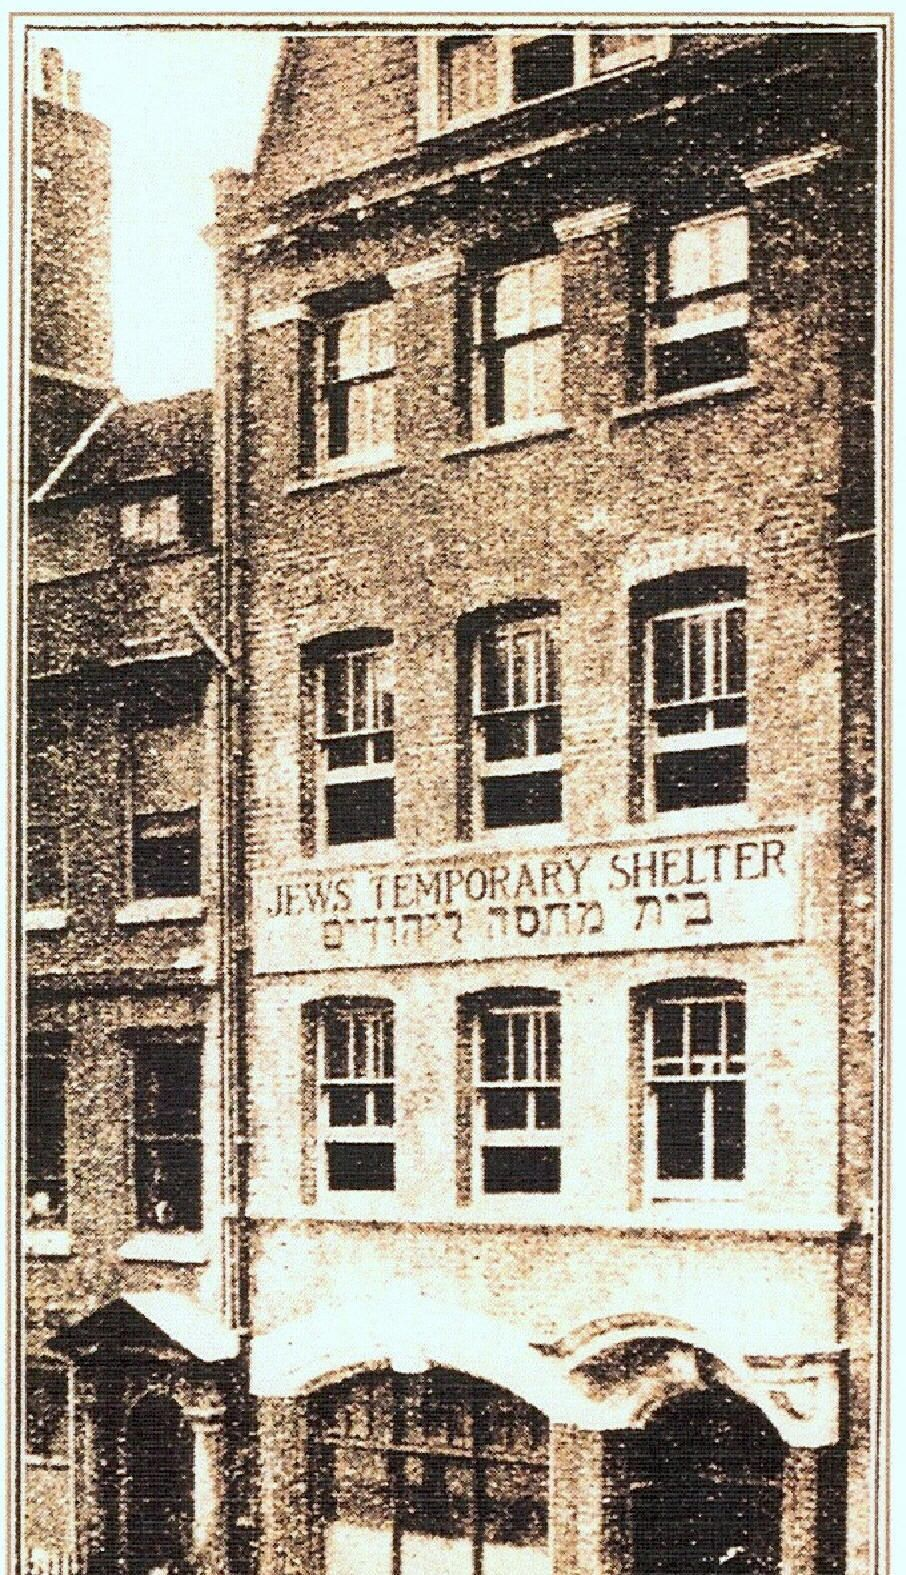 Jewish East End Of London Jews Temporary Shelter East End London London History Old London